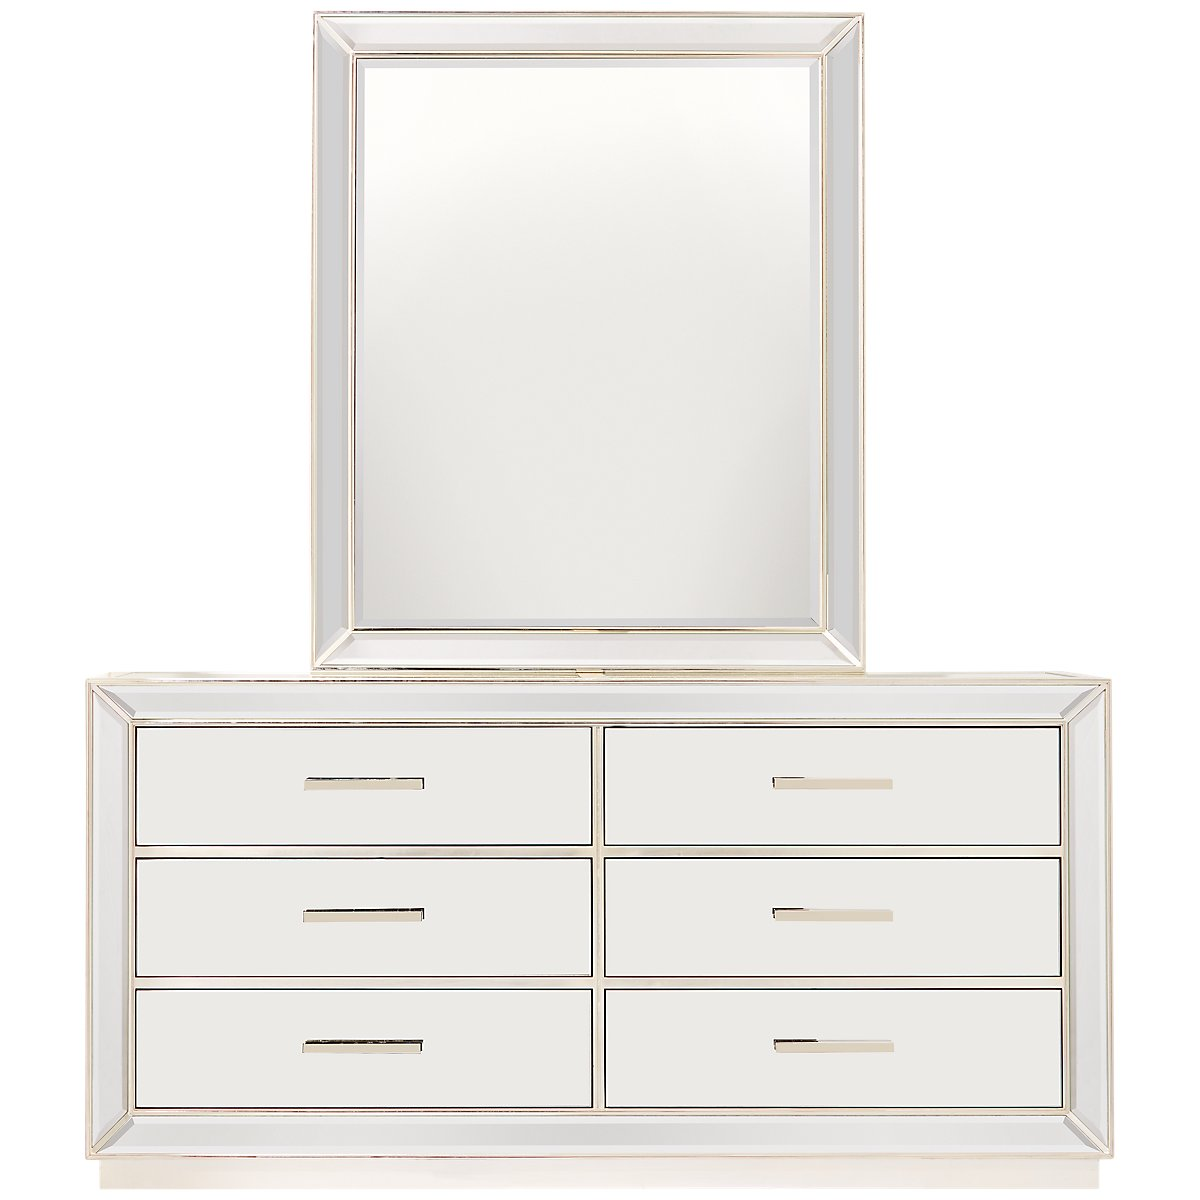 dresser mirrors collection white inexpensive bedroom ideas fascinating including dressers pictures master home cheap mobilemonitors mirrored incredible with amusing